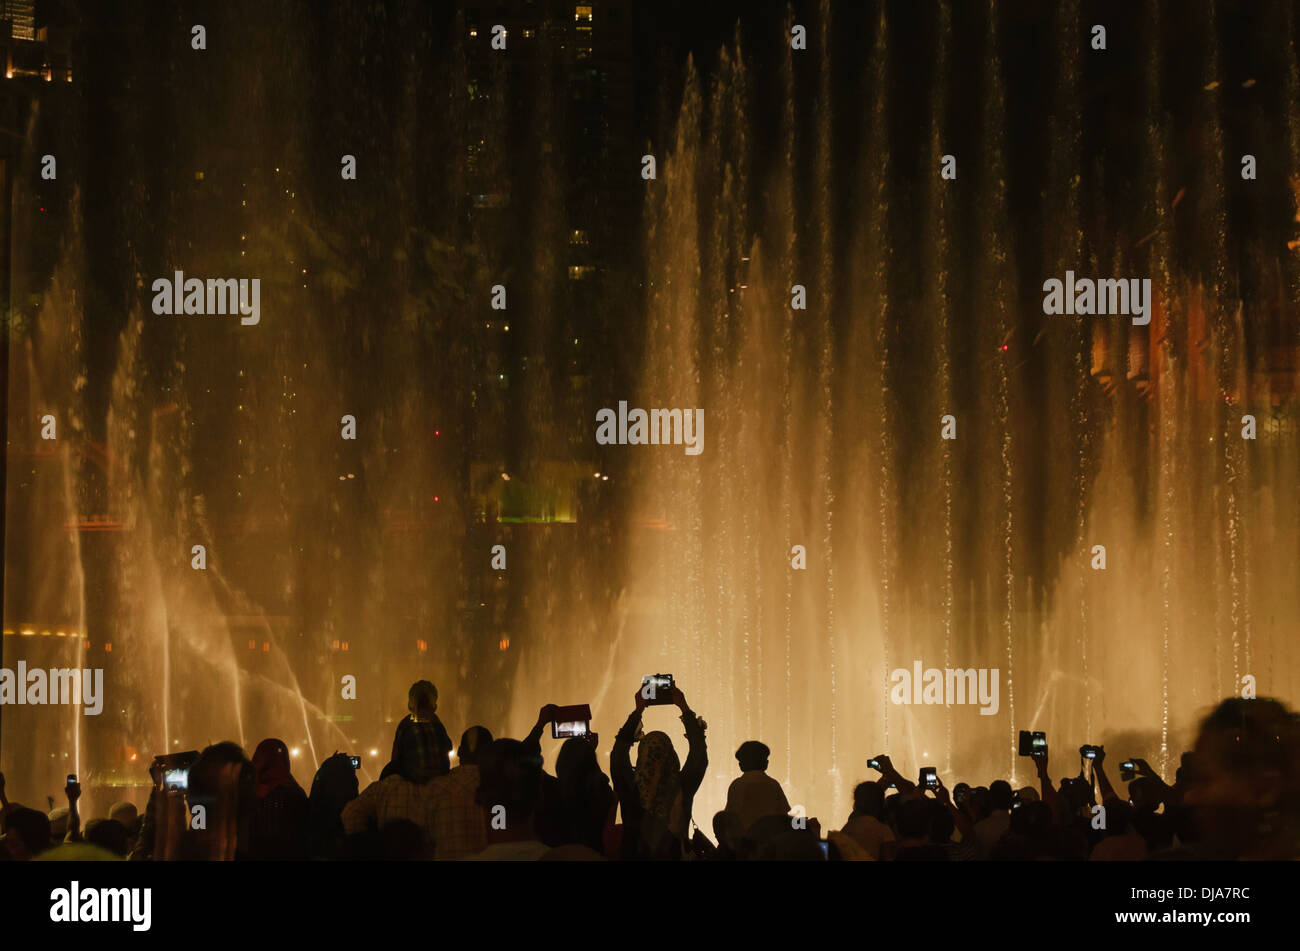 Spectators taking pictures with cell phones and tablets during the musical show at The Dubai Fountain. Dubai, UAE. - Stock Image